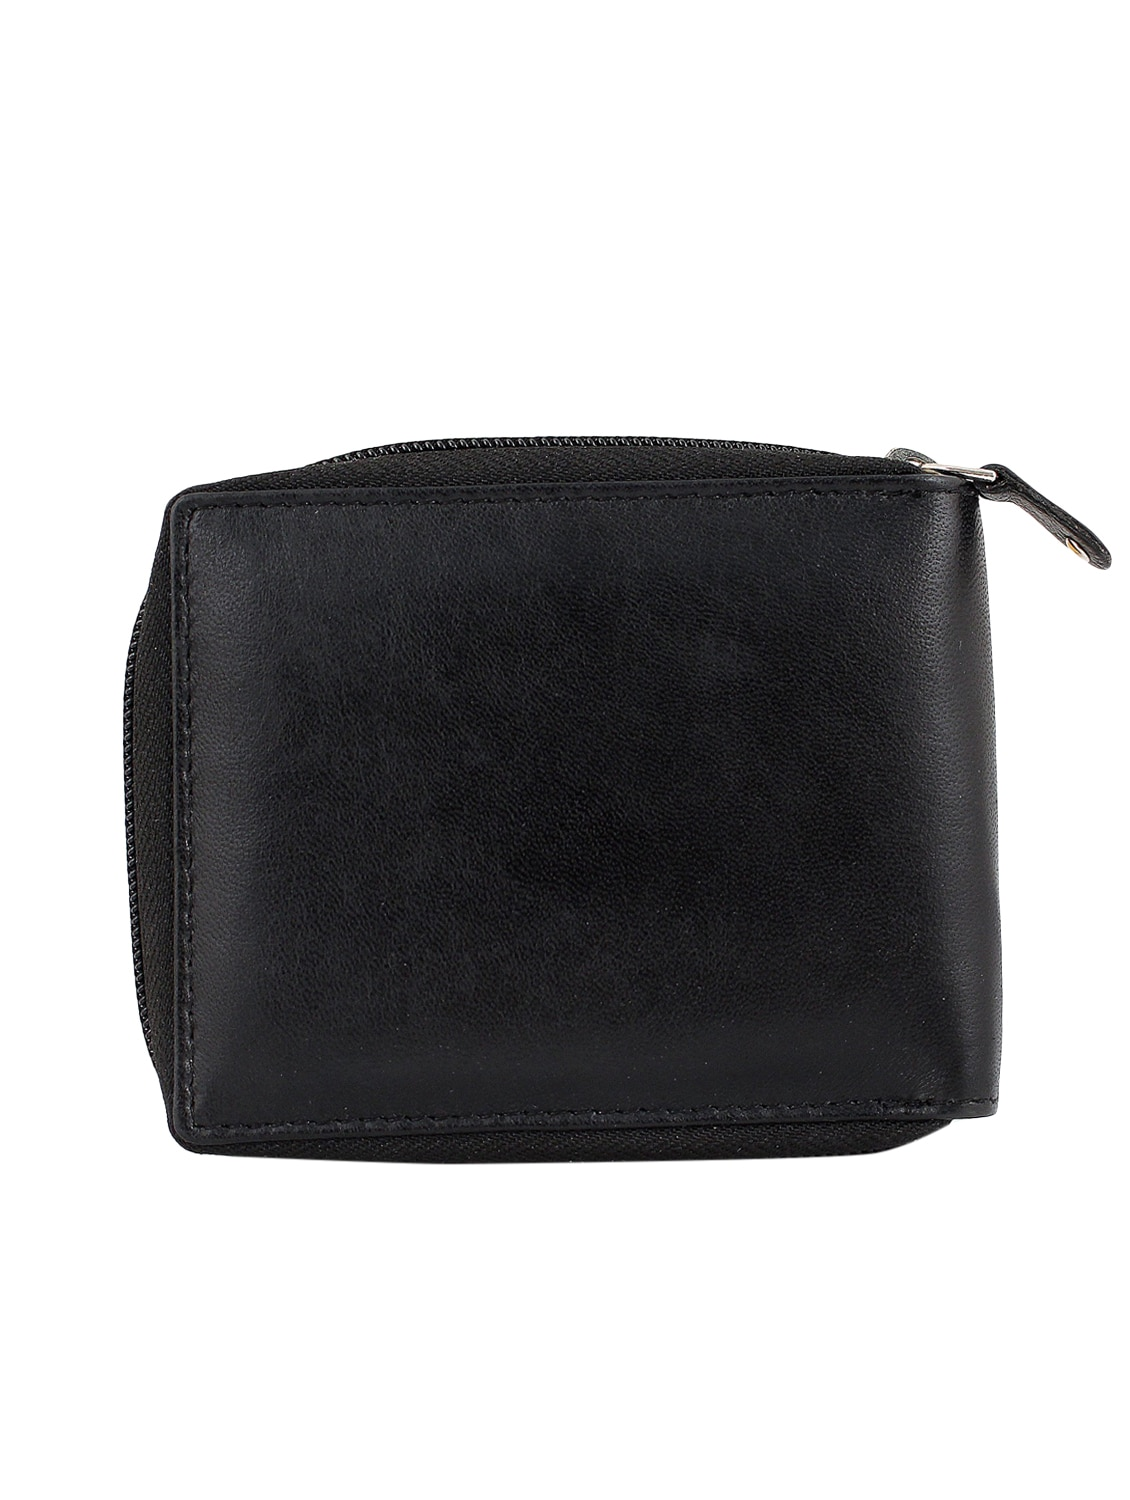 0a886cd9ab8 Buy Black Leather Wallet by Imex - Online shopping for Wallets in India